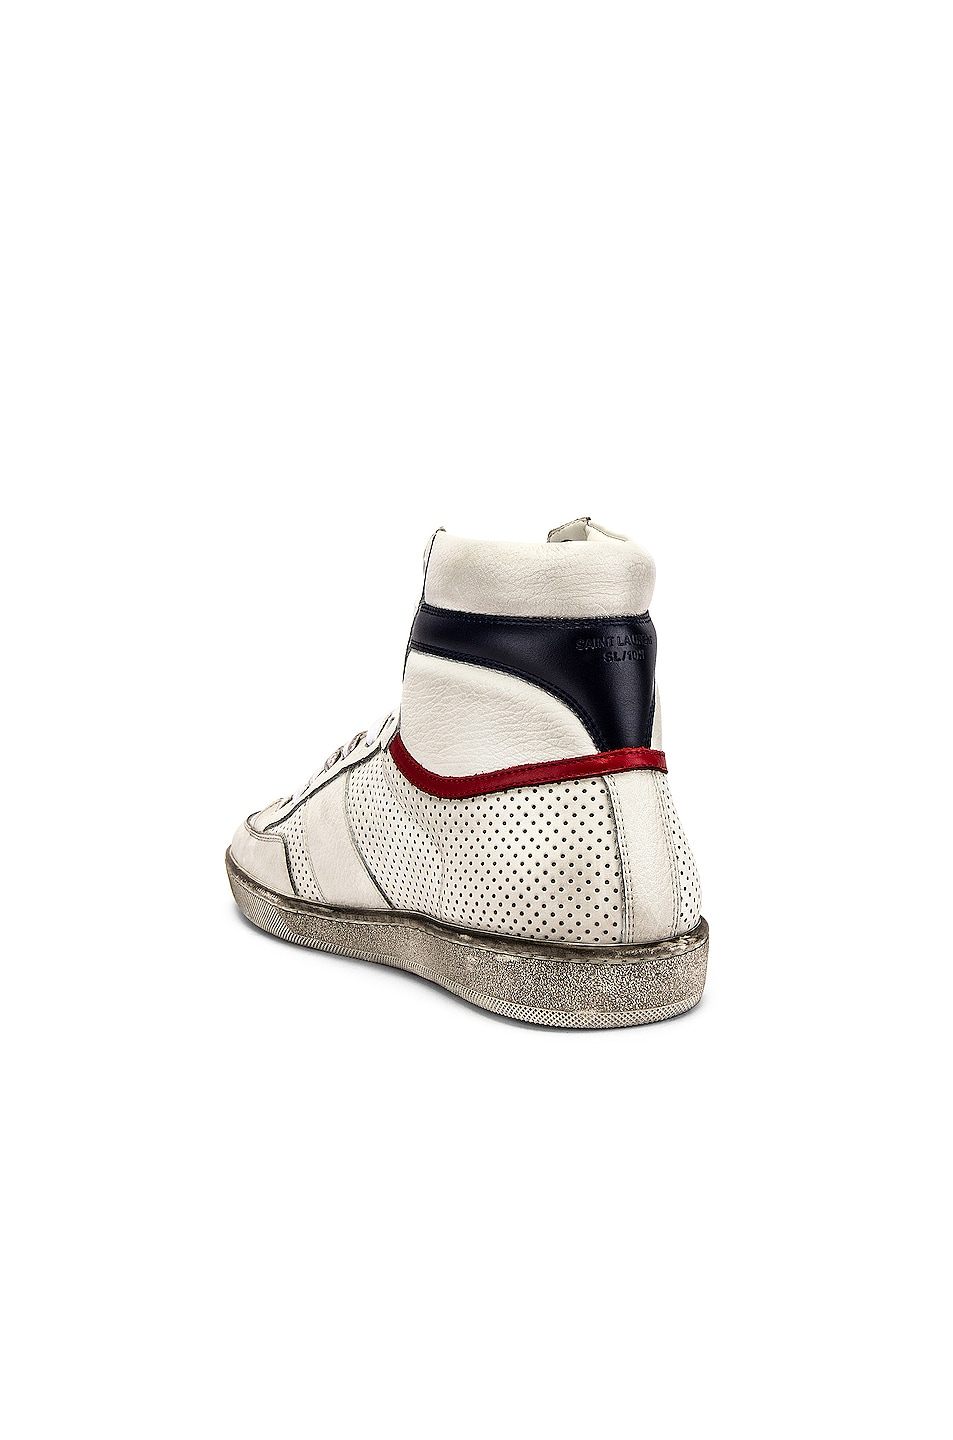 Image 3 of Saint Laurent Court Classic High Top Sneakers in White